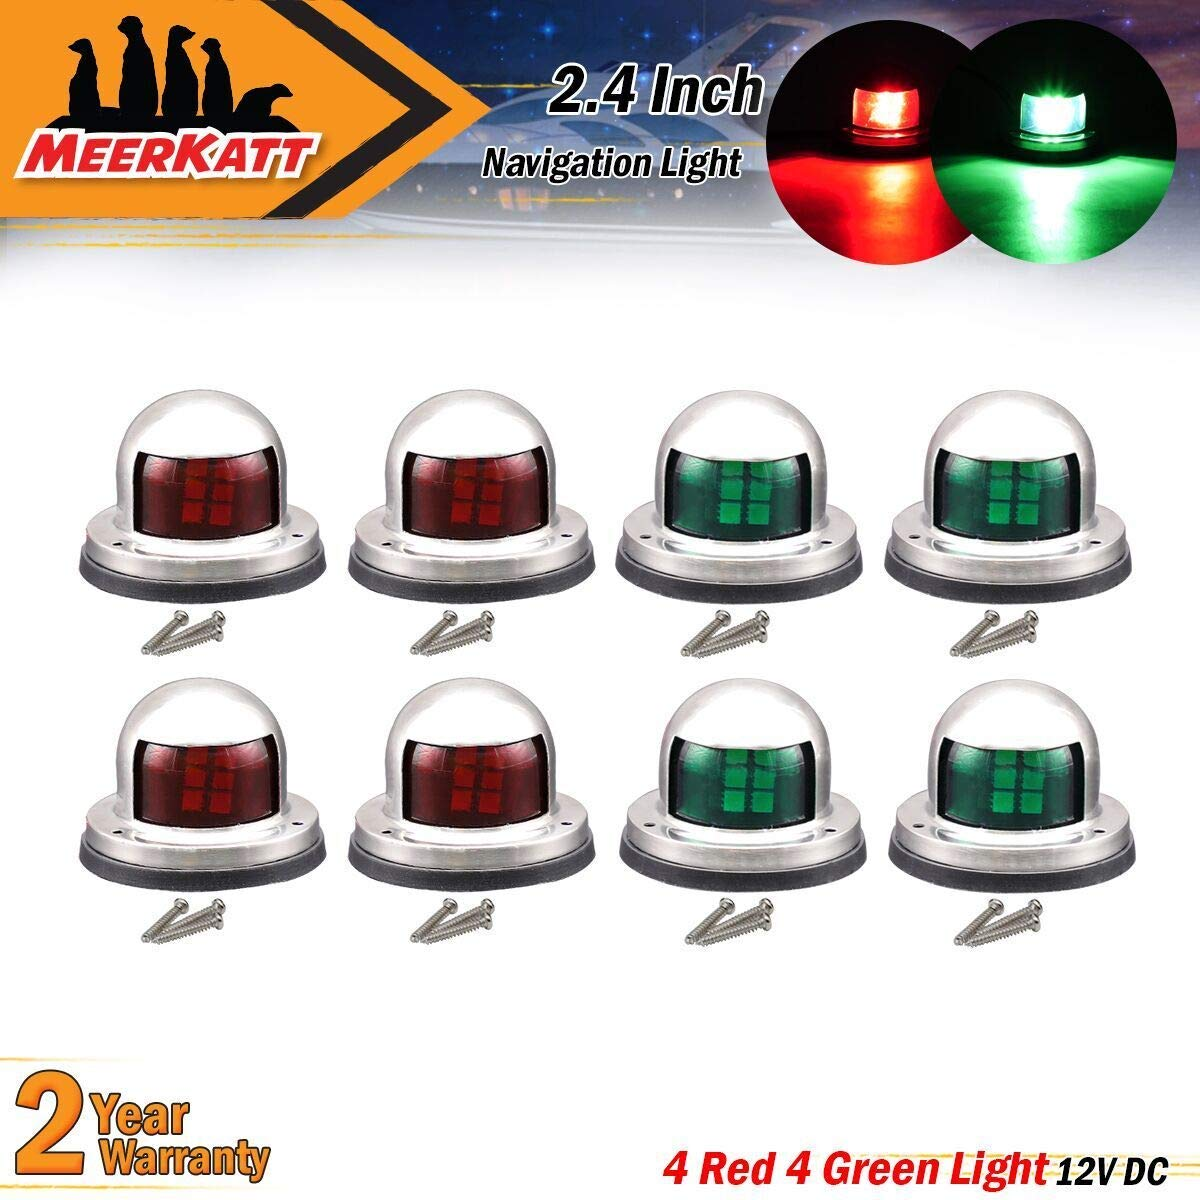 Collection Here Abs Plastic Marine Boat Yacht Light All Round 360 Degree White Led Anchor Navigation Lamp Year-End Bargain Sale Boat Parts & Accessories